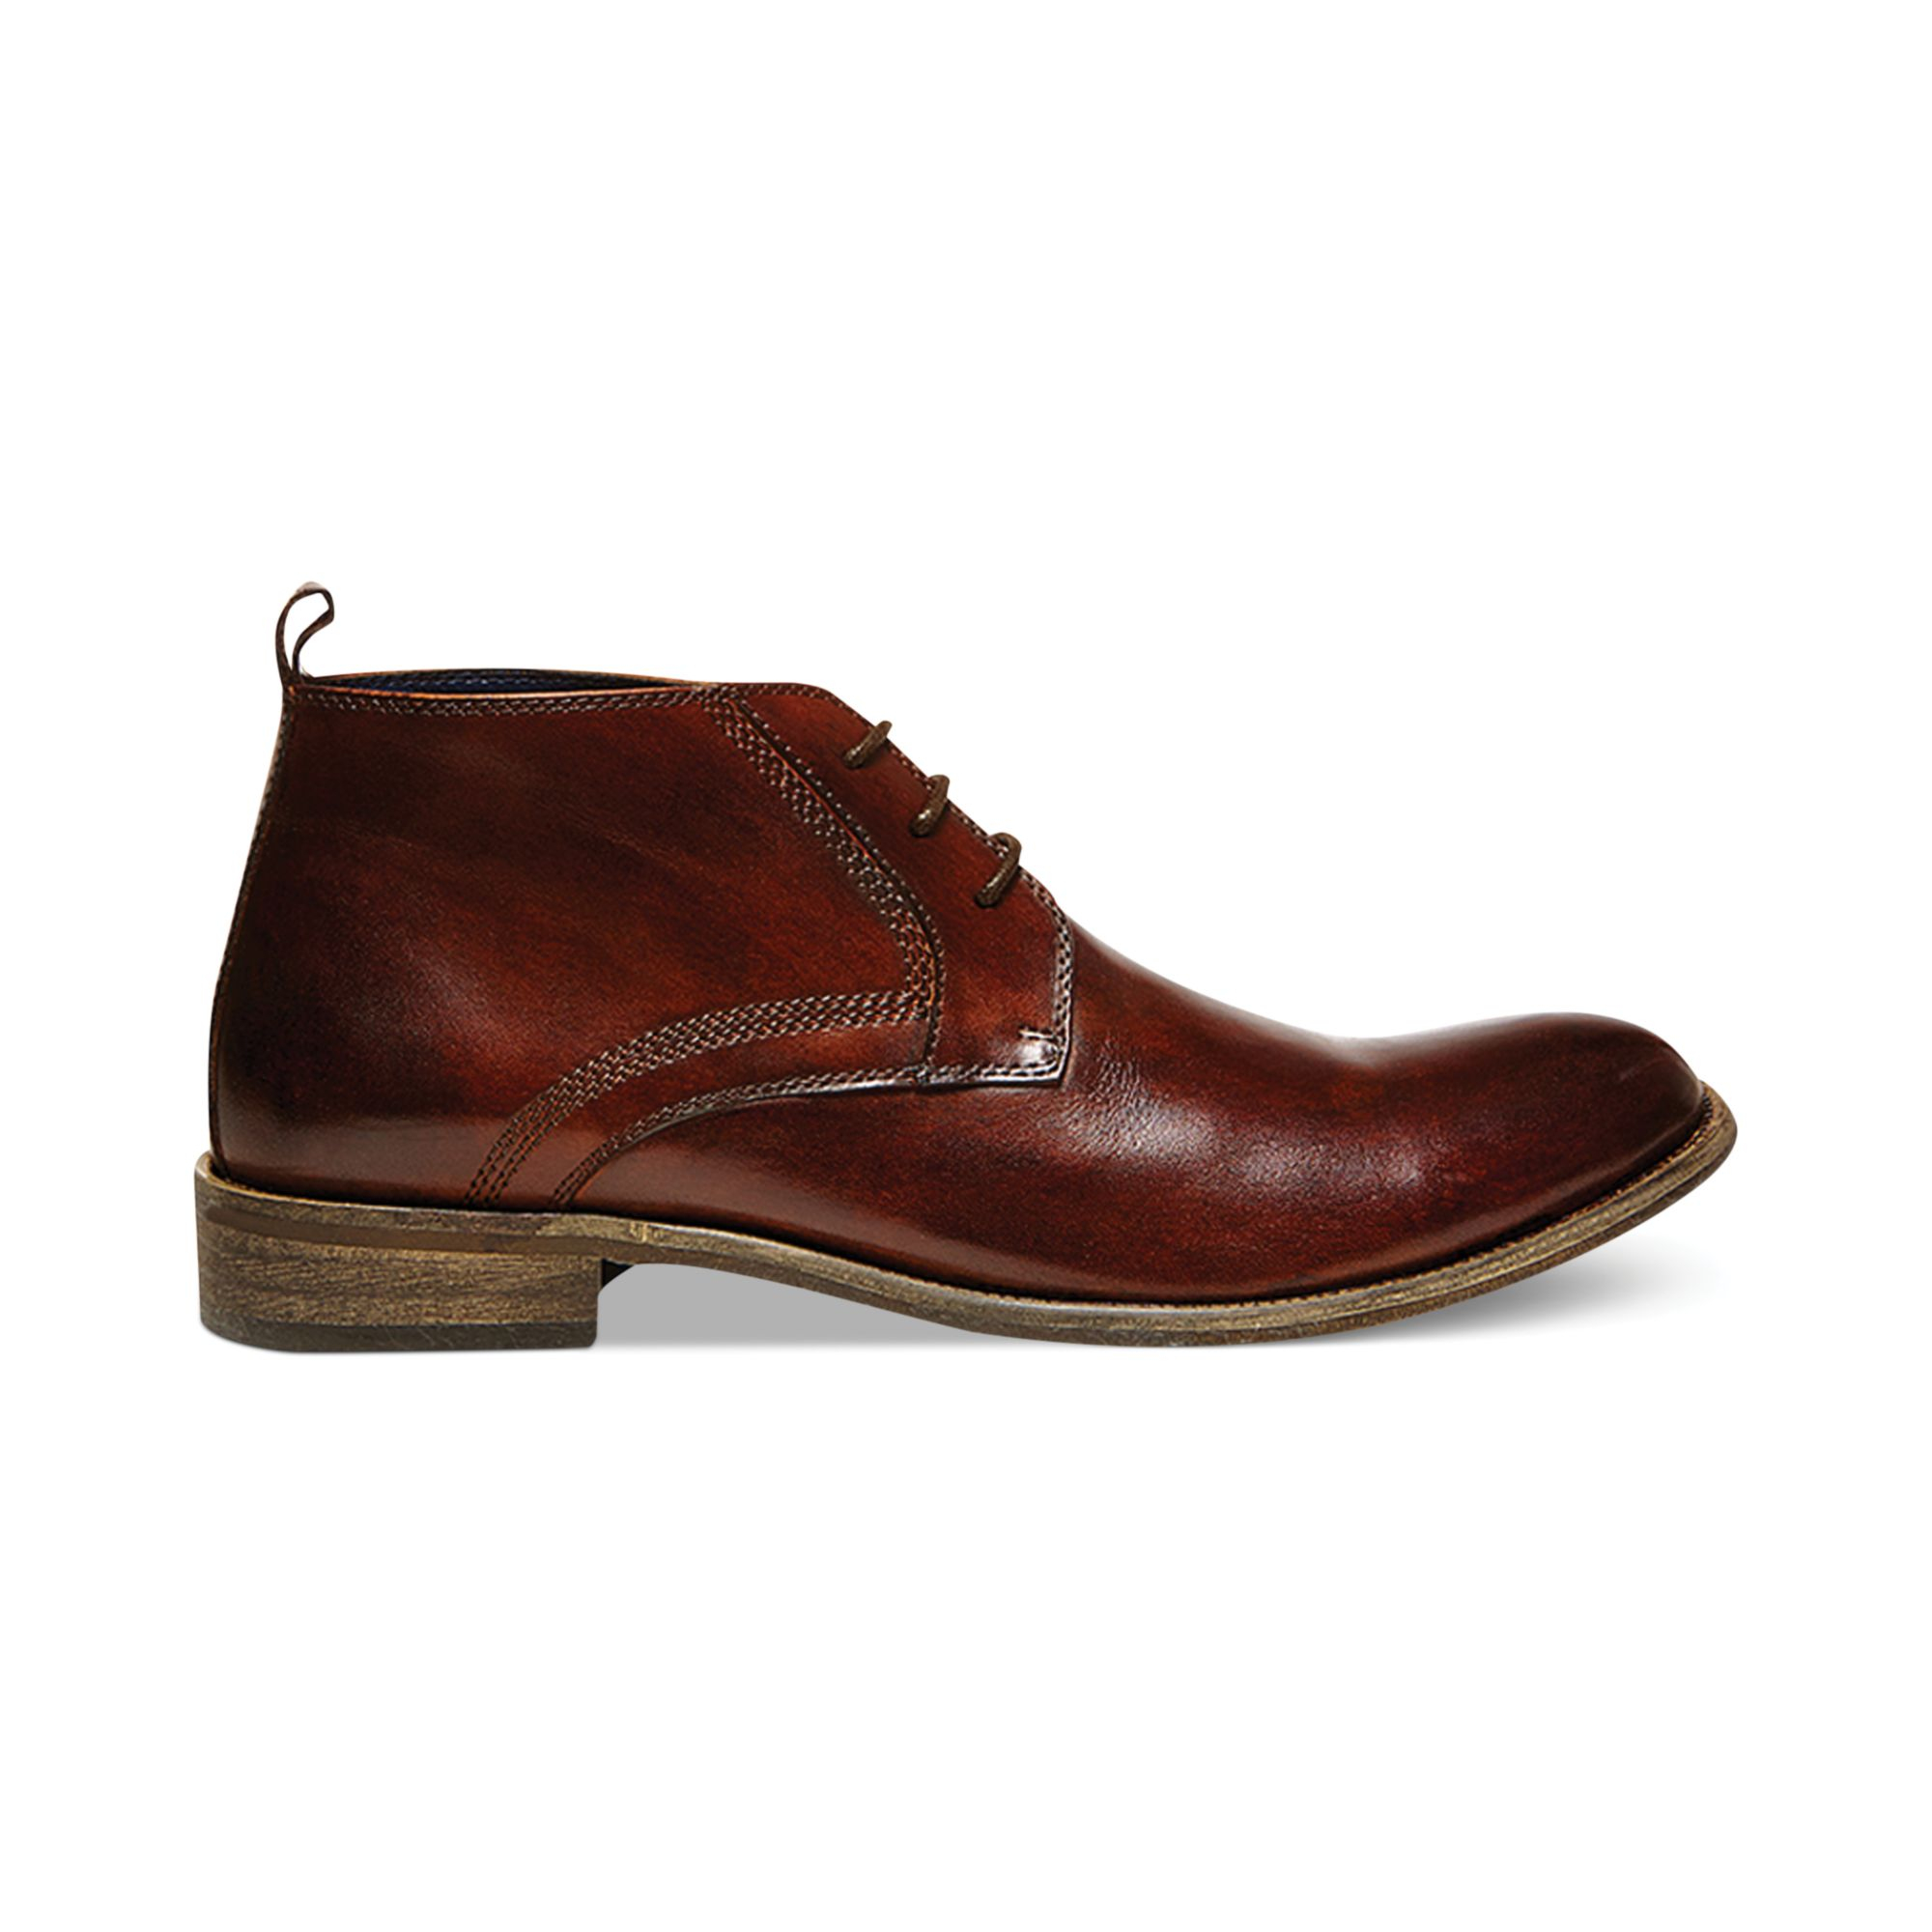 Steve Madden Boro Chukka Boots In Brown For Men Cognac